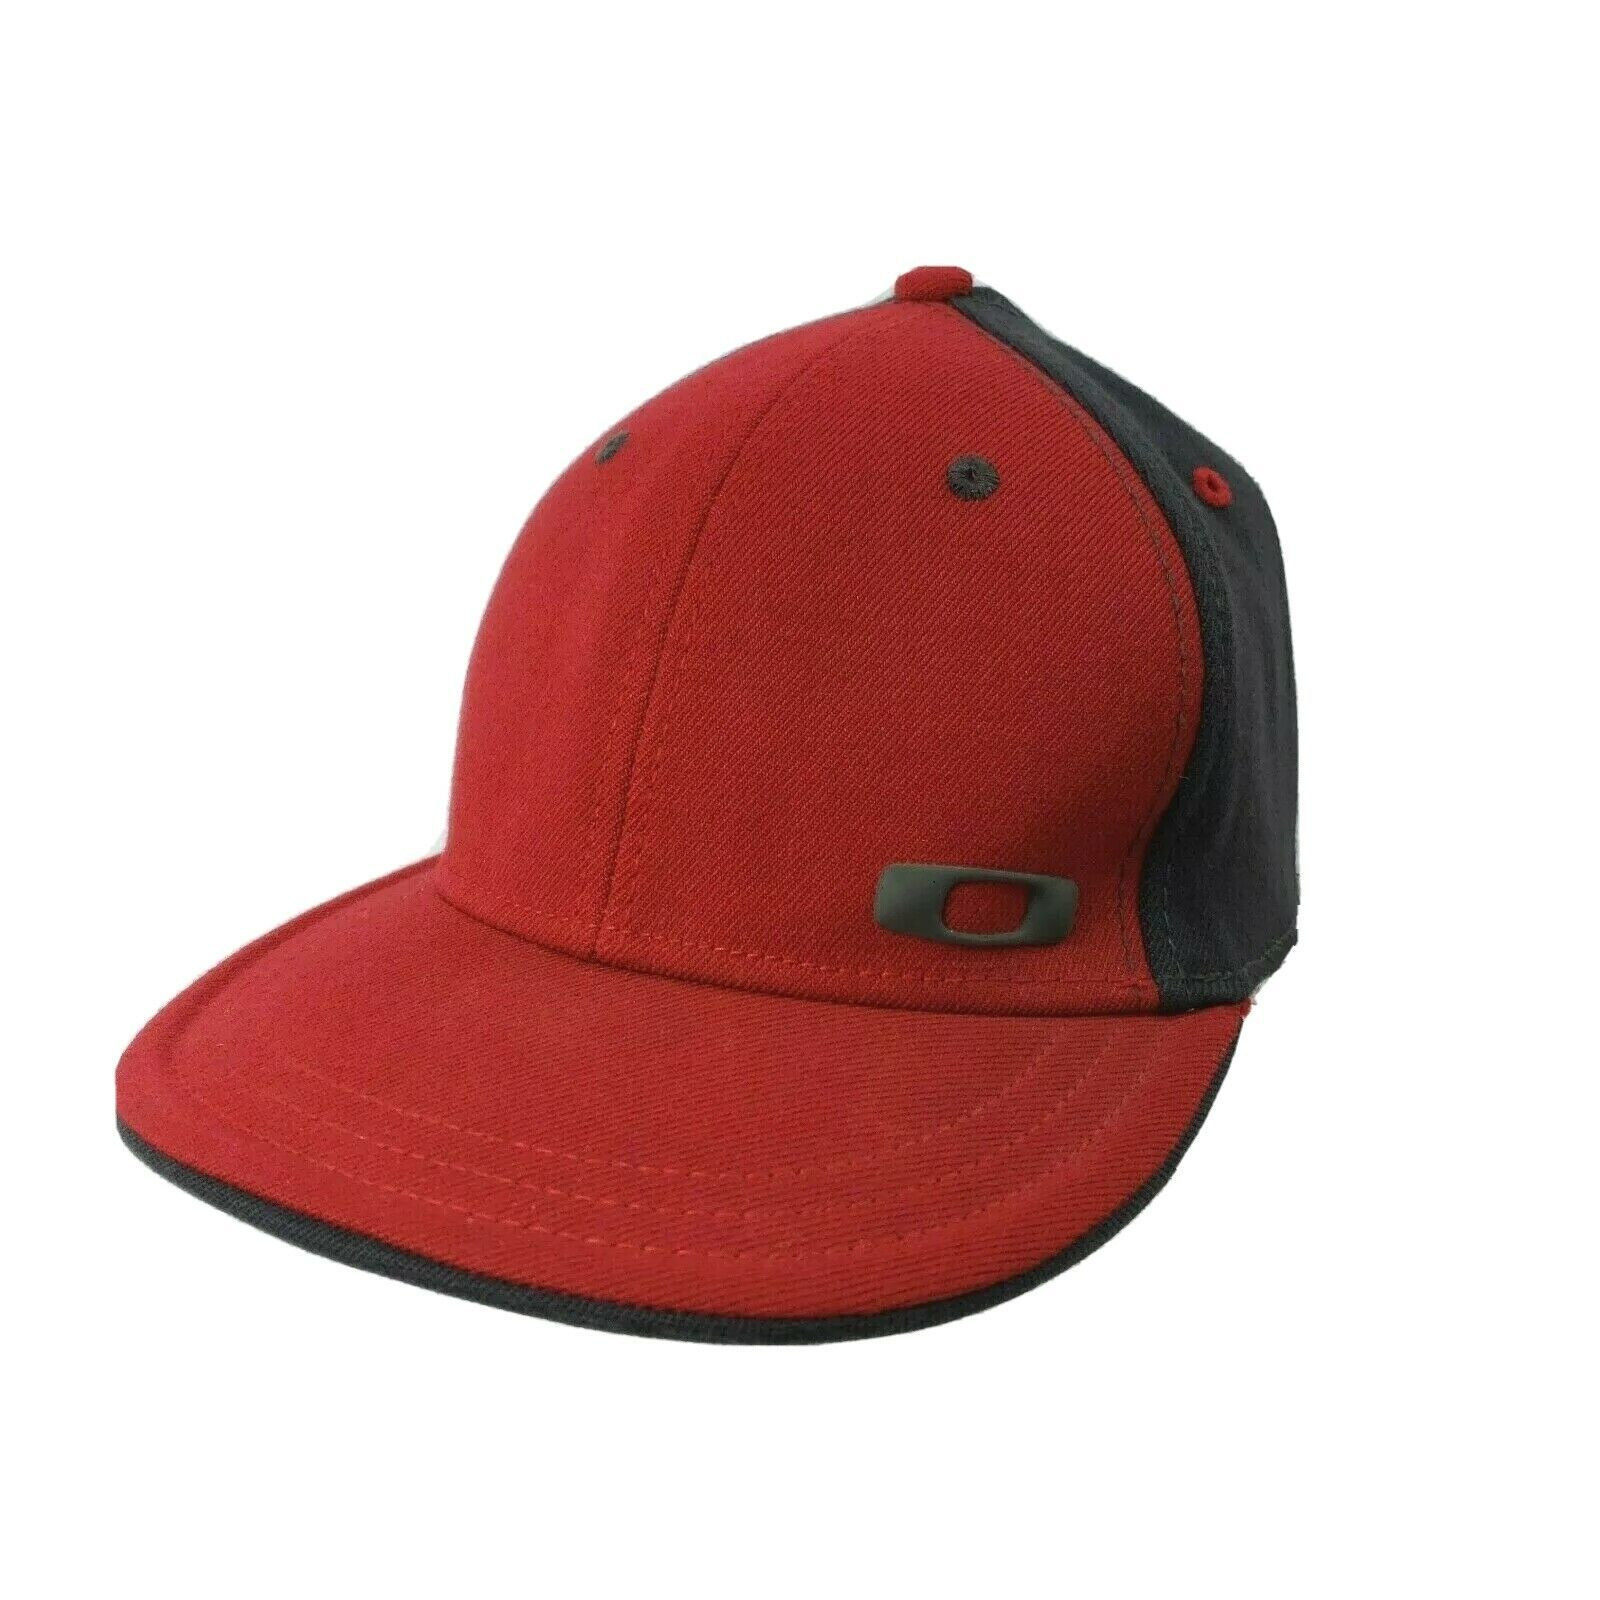 Primary image for Oakley Fitted Hat Cap A-Flex Size S/M Logo Red Gray Black Interior